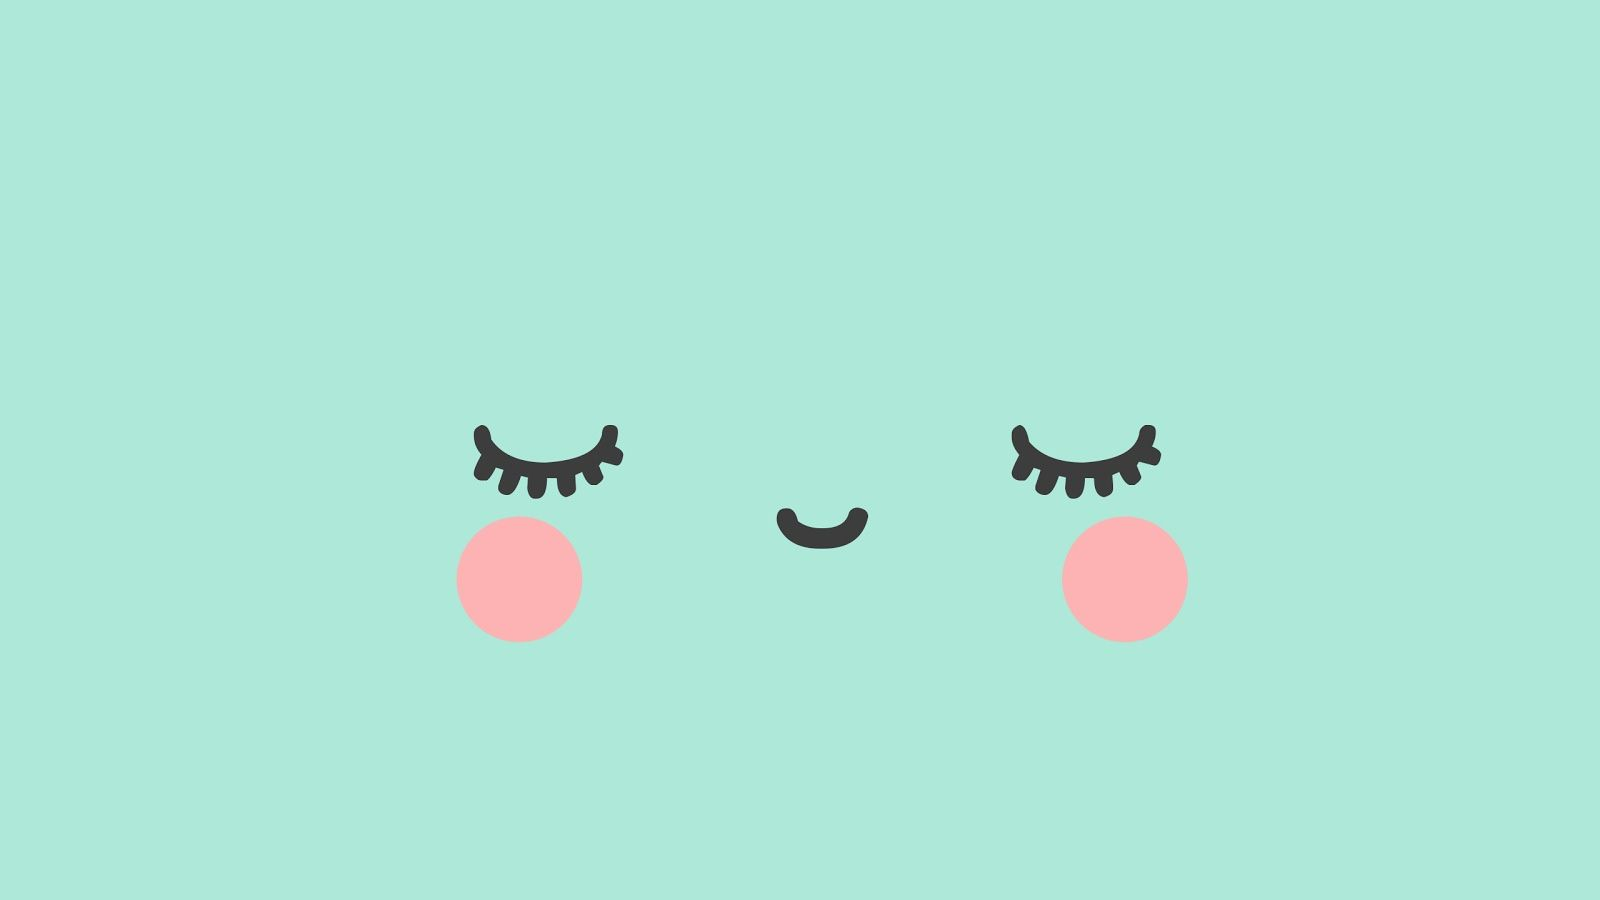 Kawaii Laptop Wallpaper Posted By Samantha Mercado